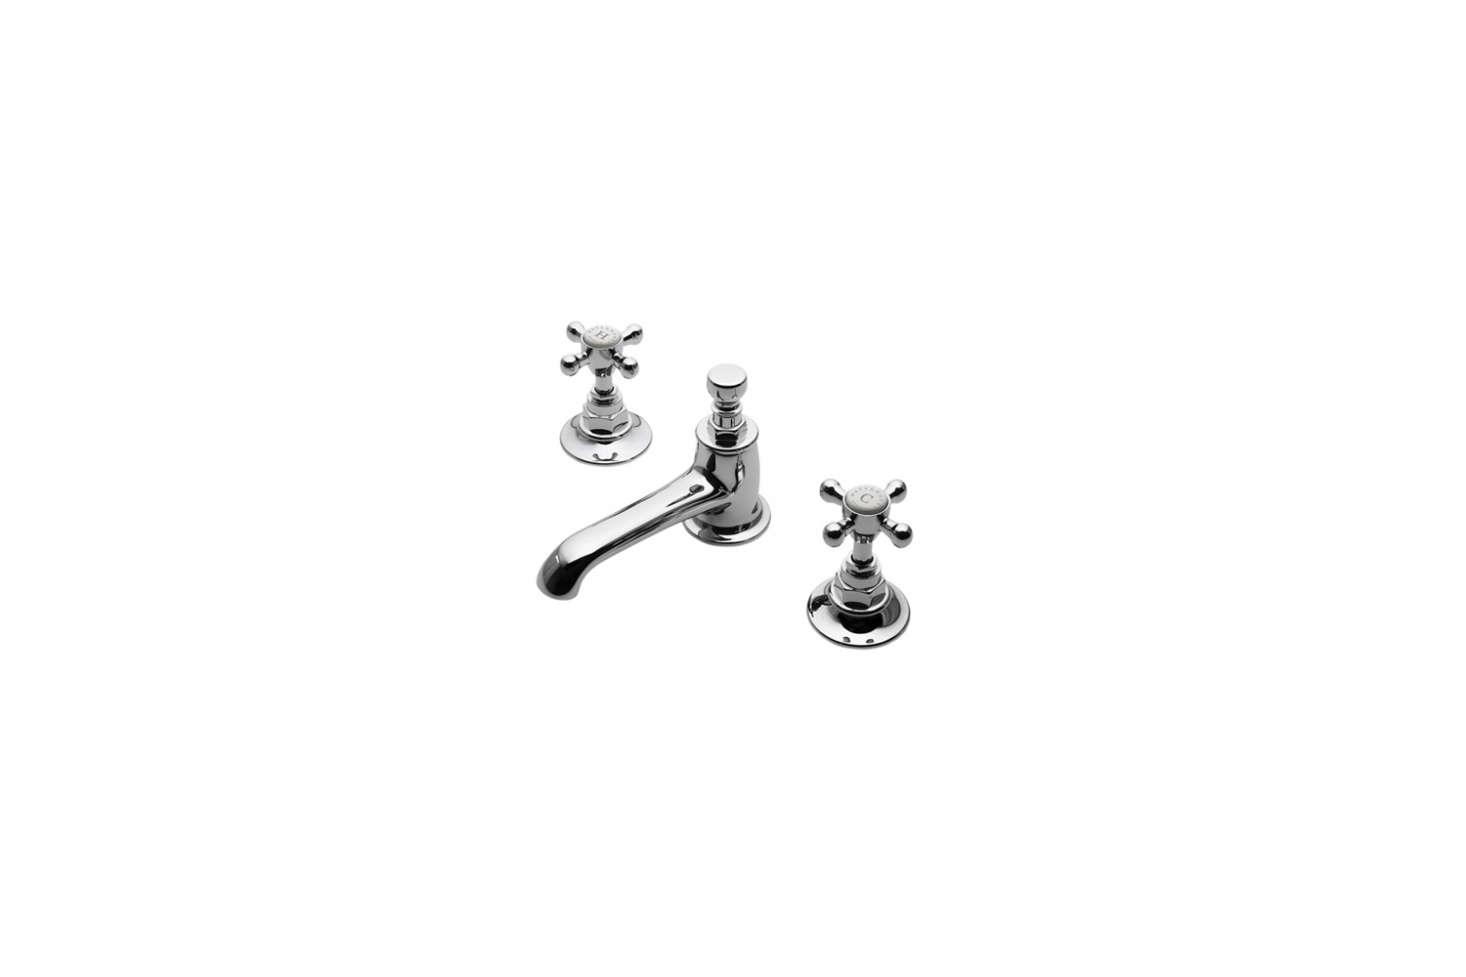 The sink faucet is the Highgate Low Profile Three Hole Deck Mounted Lavatory Faucet with Metal Cross Handles; $65src=